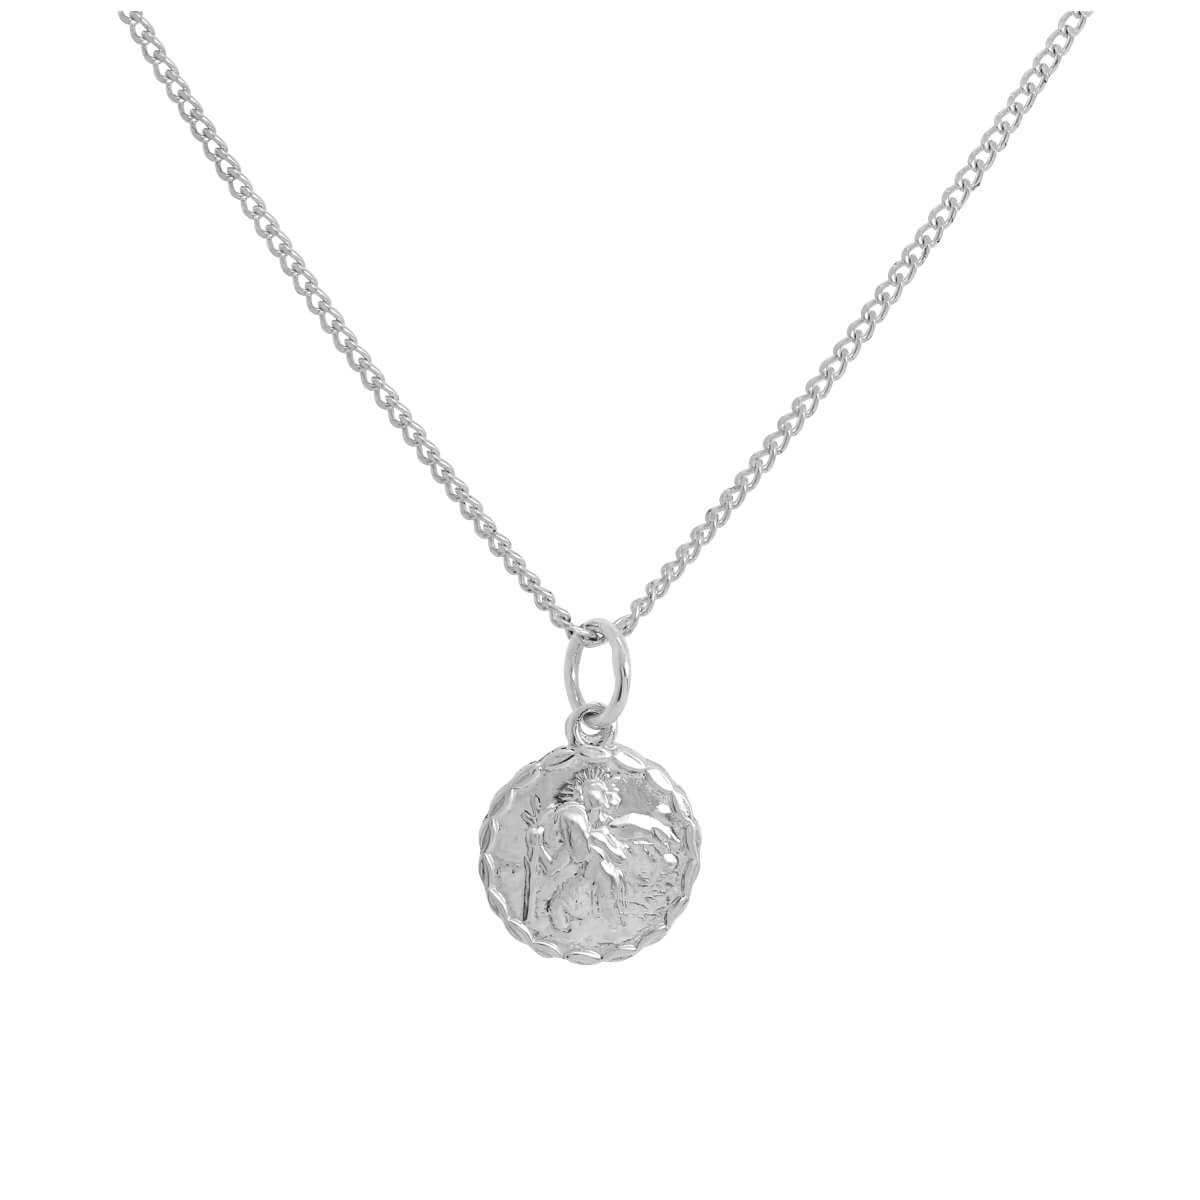 Tiny Sterling Silver Round St. Christopher Pendant Necklace 16 - 24 Inches